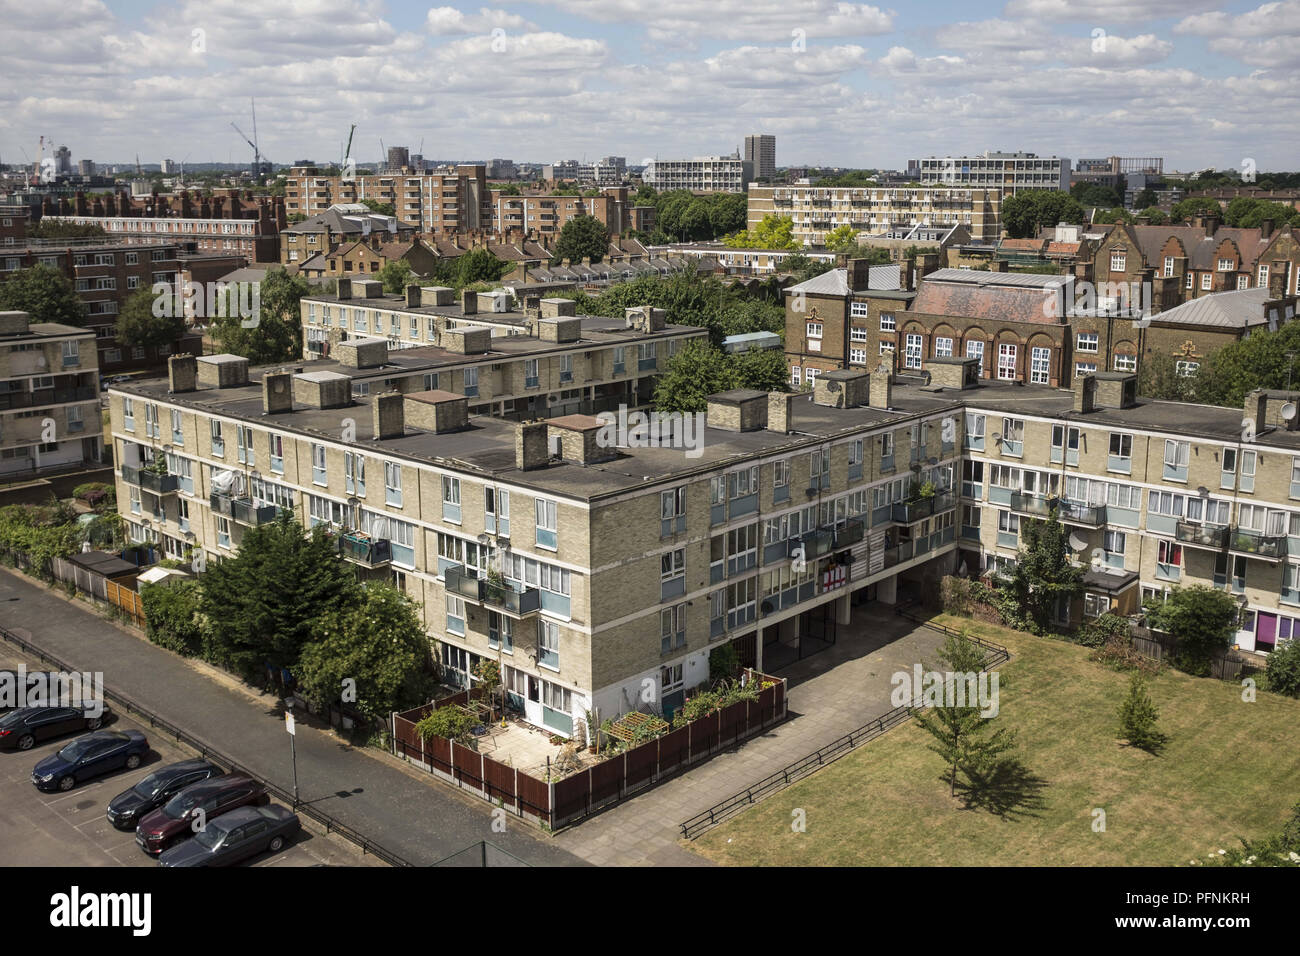 London, UK. 21st June, 2018. A social housing estate seen in Leeds.Social housing is a method of housing tenure in which the home is possessed by a local authority, which may be central or local, Social housing is a rental housing which may be owned and ran by the state, by non-profit organizations, or by a combination of the two, usually with the purpose of delivering affordable housing. Social housing can also be perceived as a potential solution to housing inequality. Credit: Rahman Hassani/SOPA Images/ZUMA Wire/Alamy Live News - Stock Image